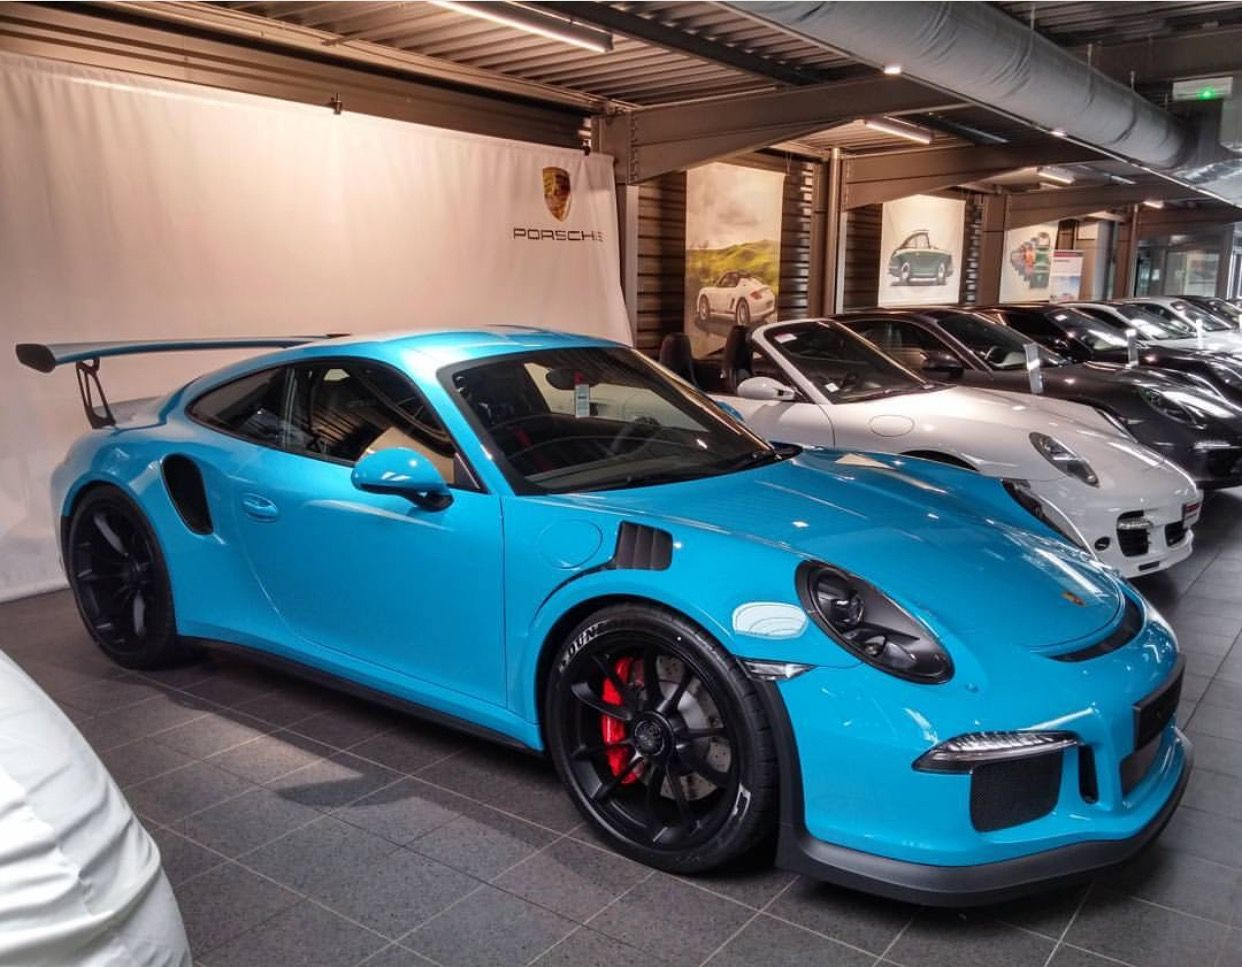 Porsche 991 GT3 RS painted in Miami Blue Photo taken by